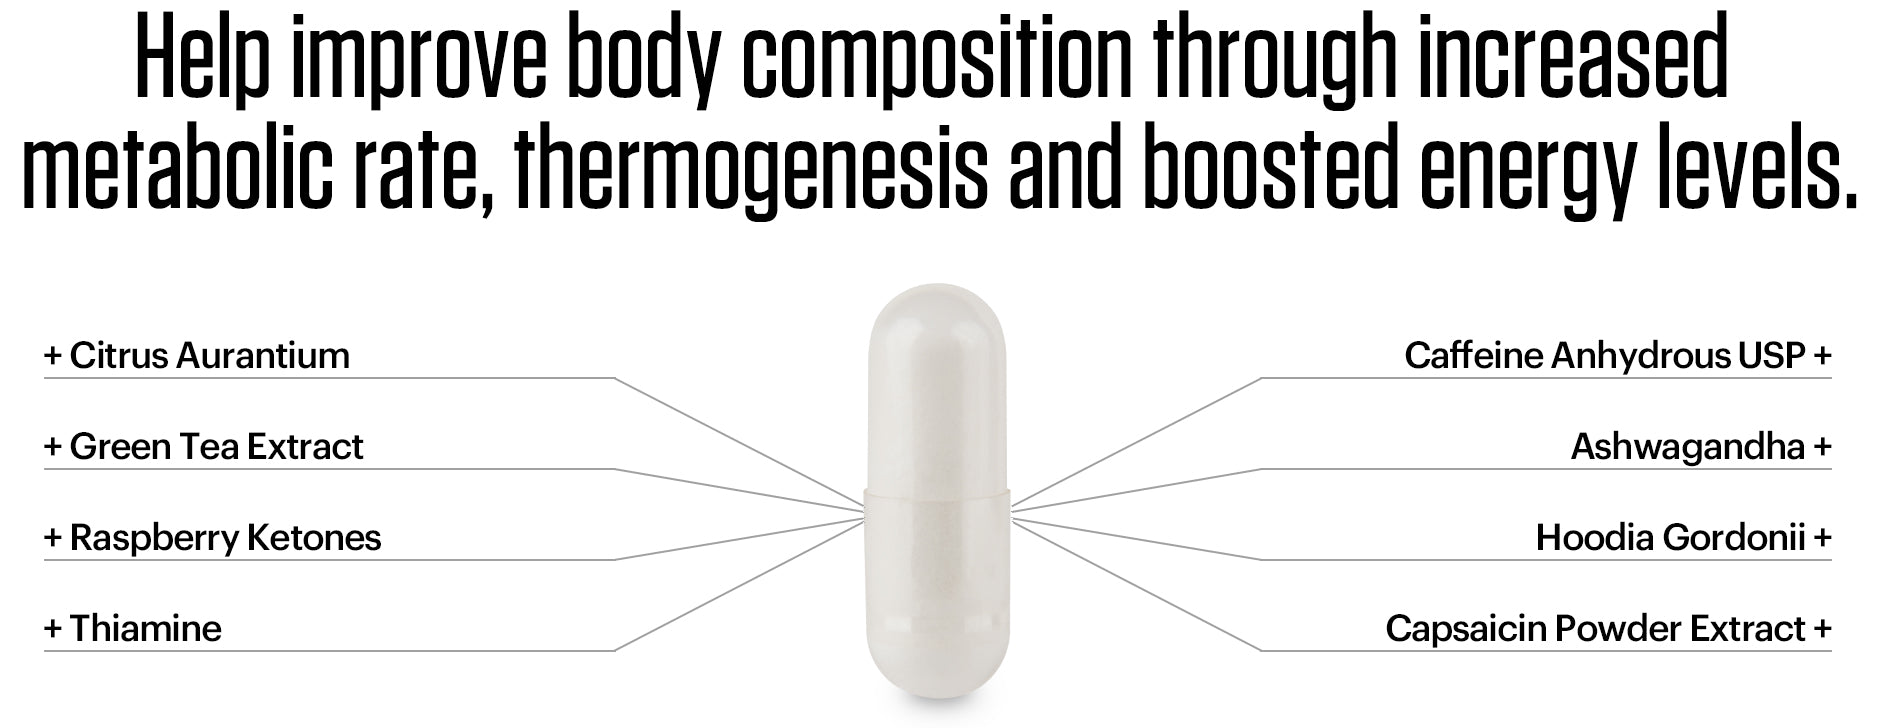 HYPERCOR™ help improve body composition